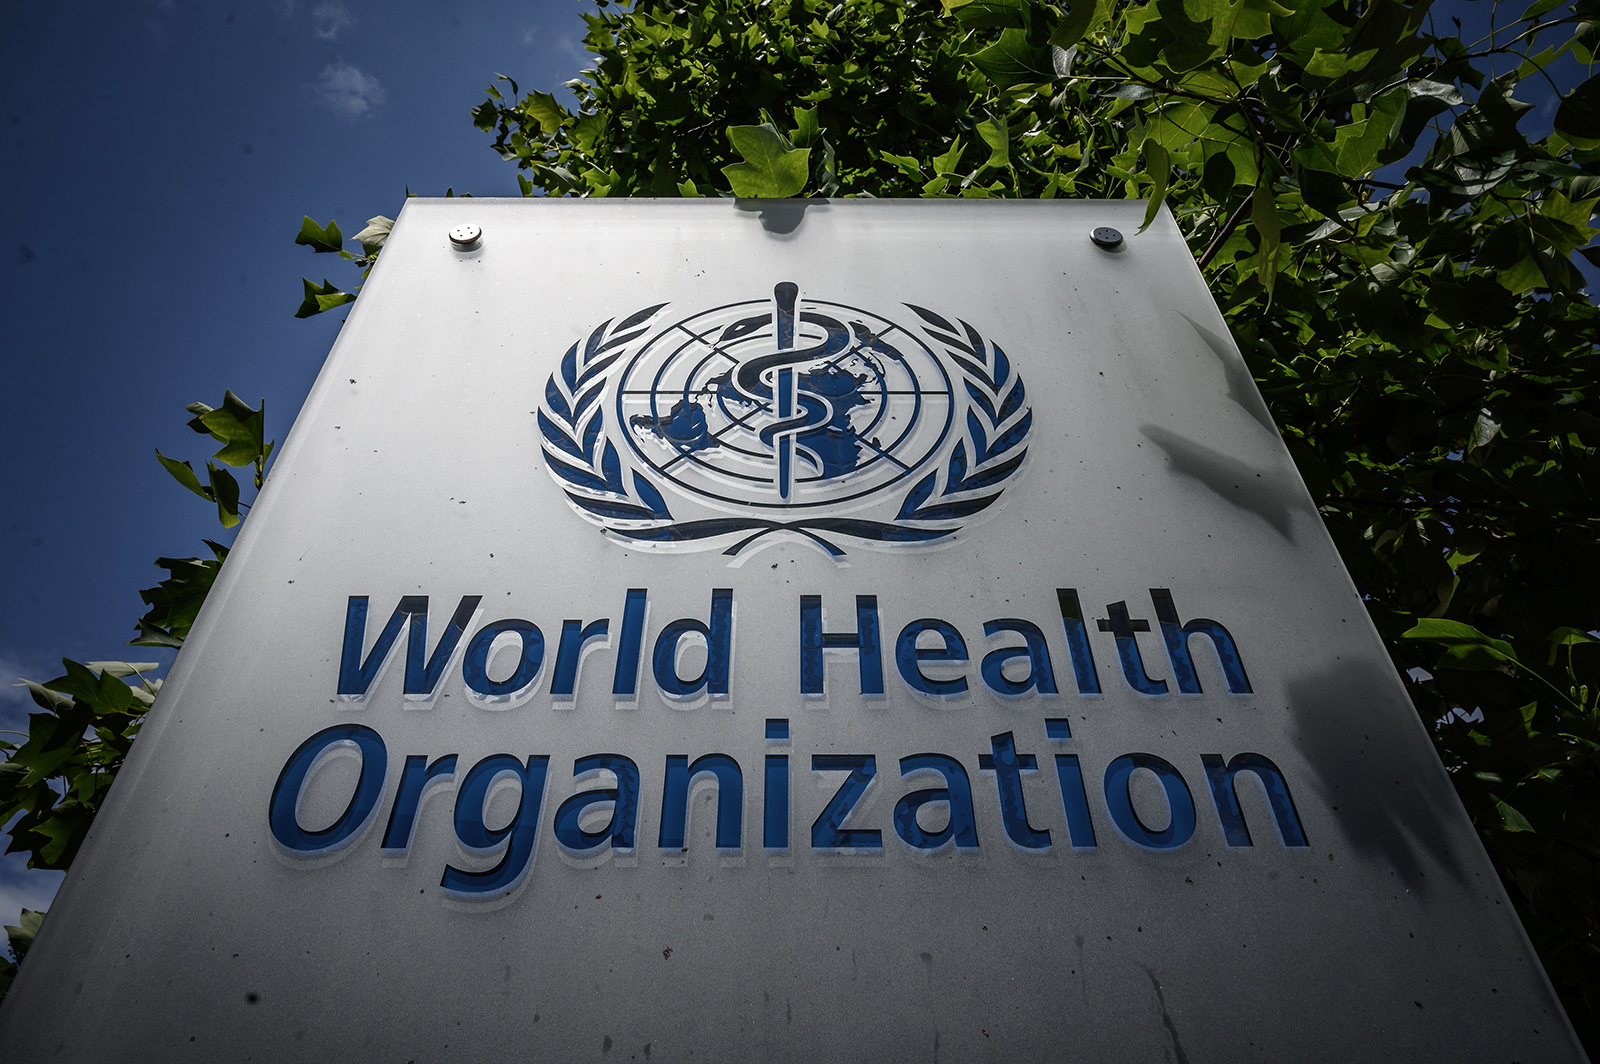 The World Health Organization (WHO) sign stands at their headquarters in Geneva, Switzerland.